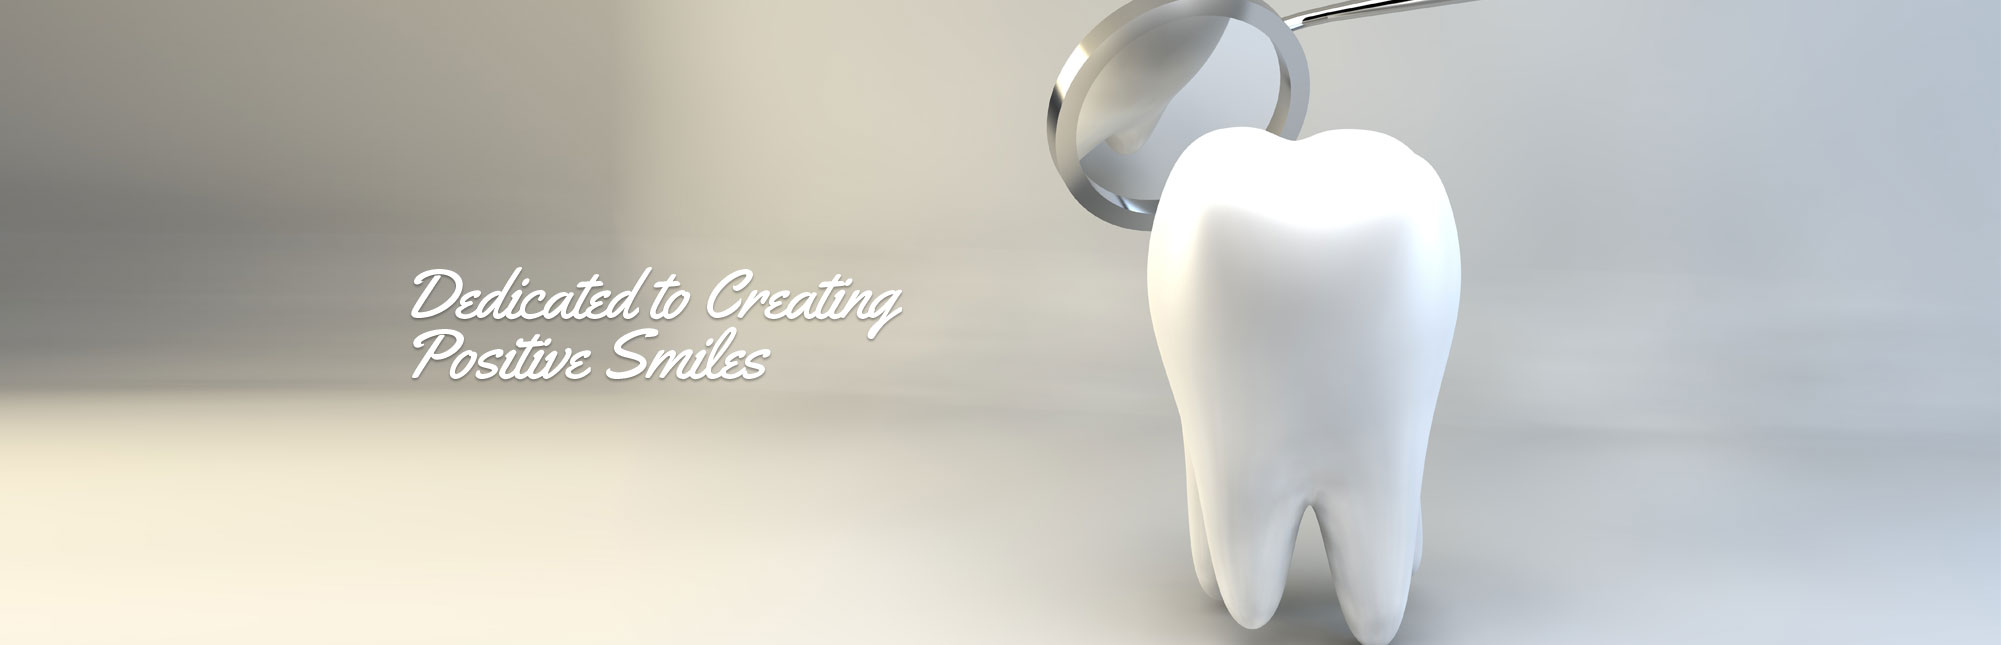 Single Tooth and Dental Mirror - Dedicated to Creating Positive Smiles